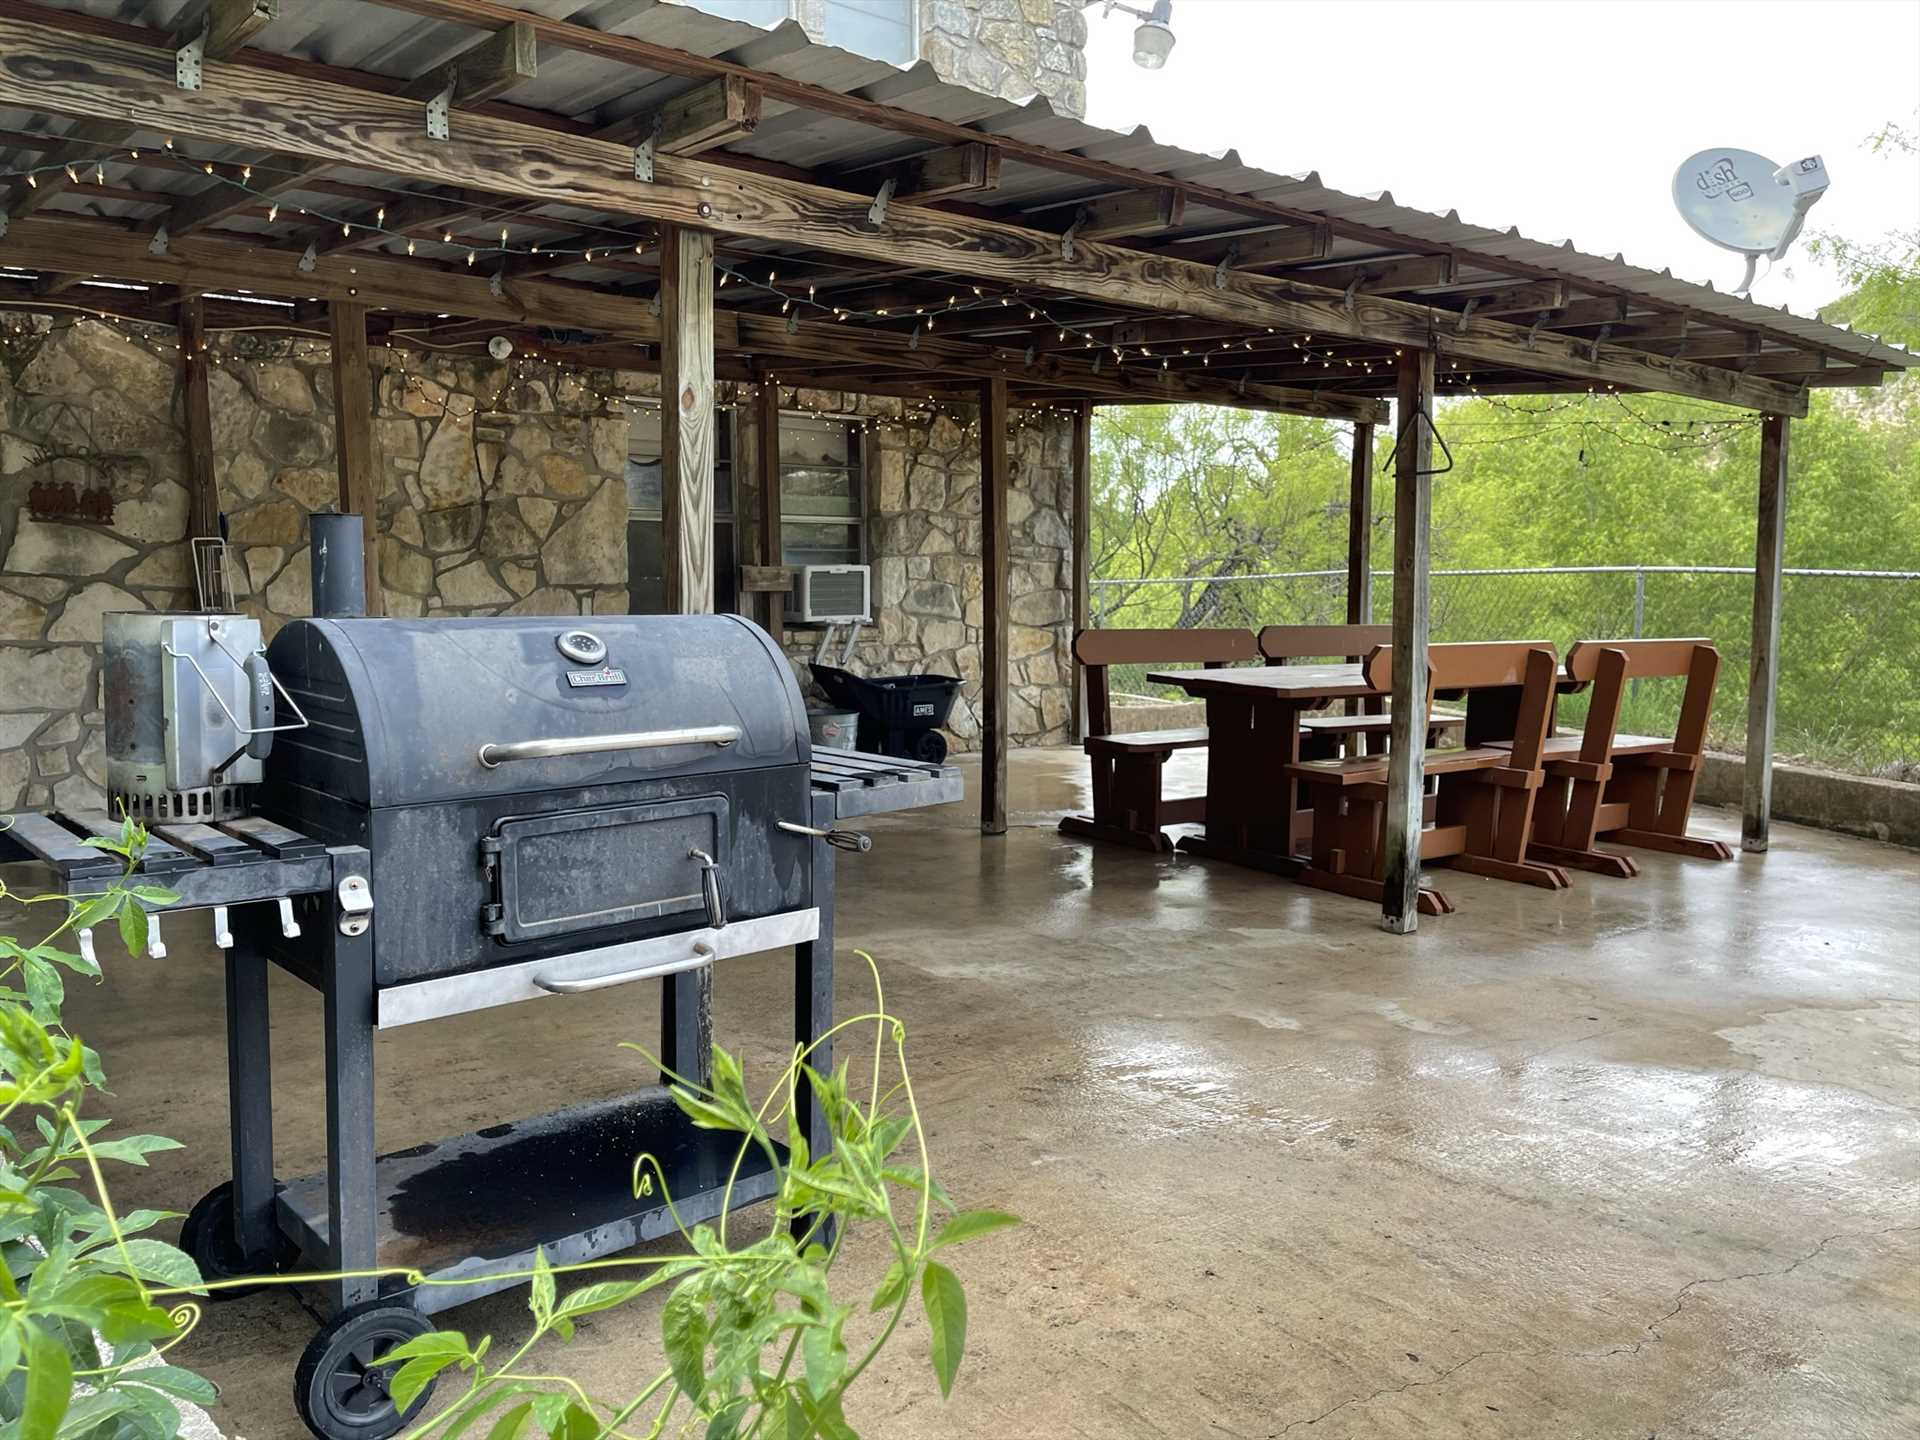 Enjoy a grilled feast under the sparkling outdoor lights, or turn them off and take in a natural star show!